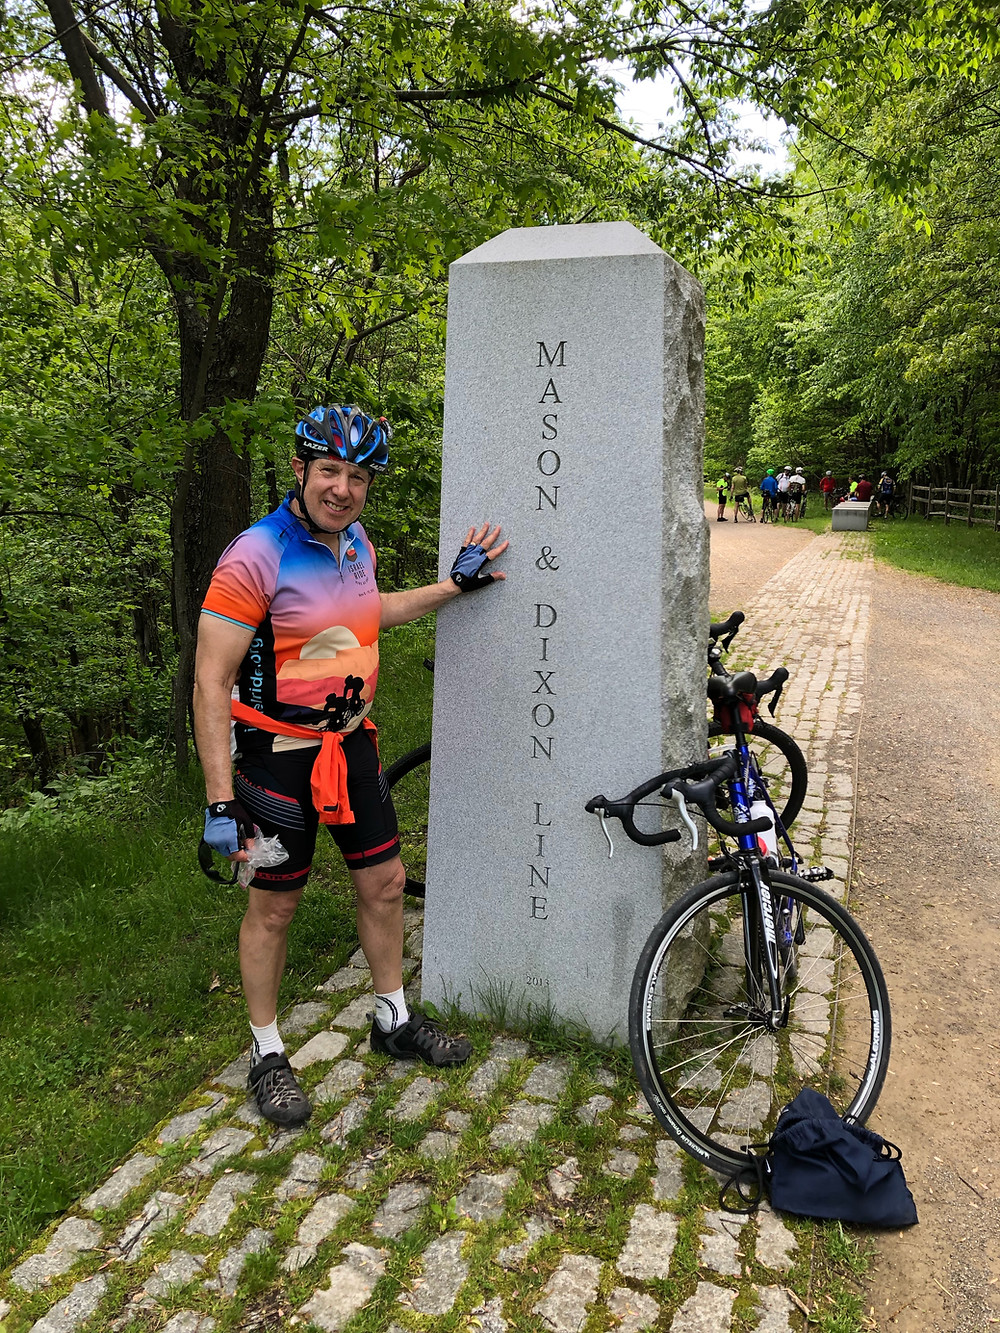 On a cycling trip to the Maryland-Pennsylvania border